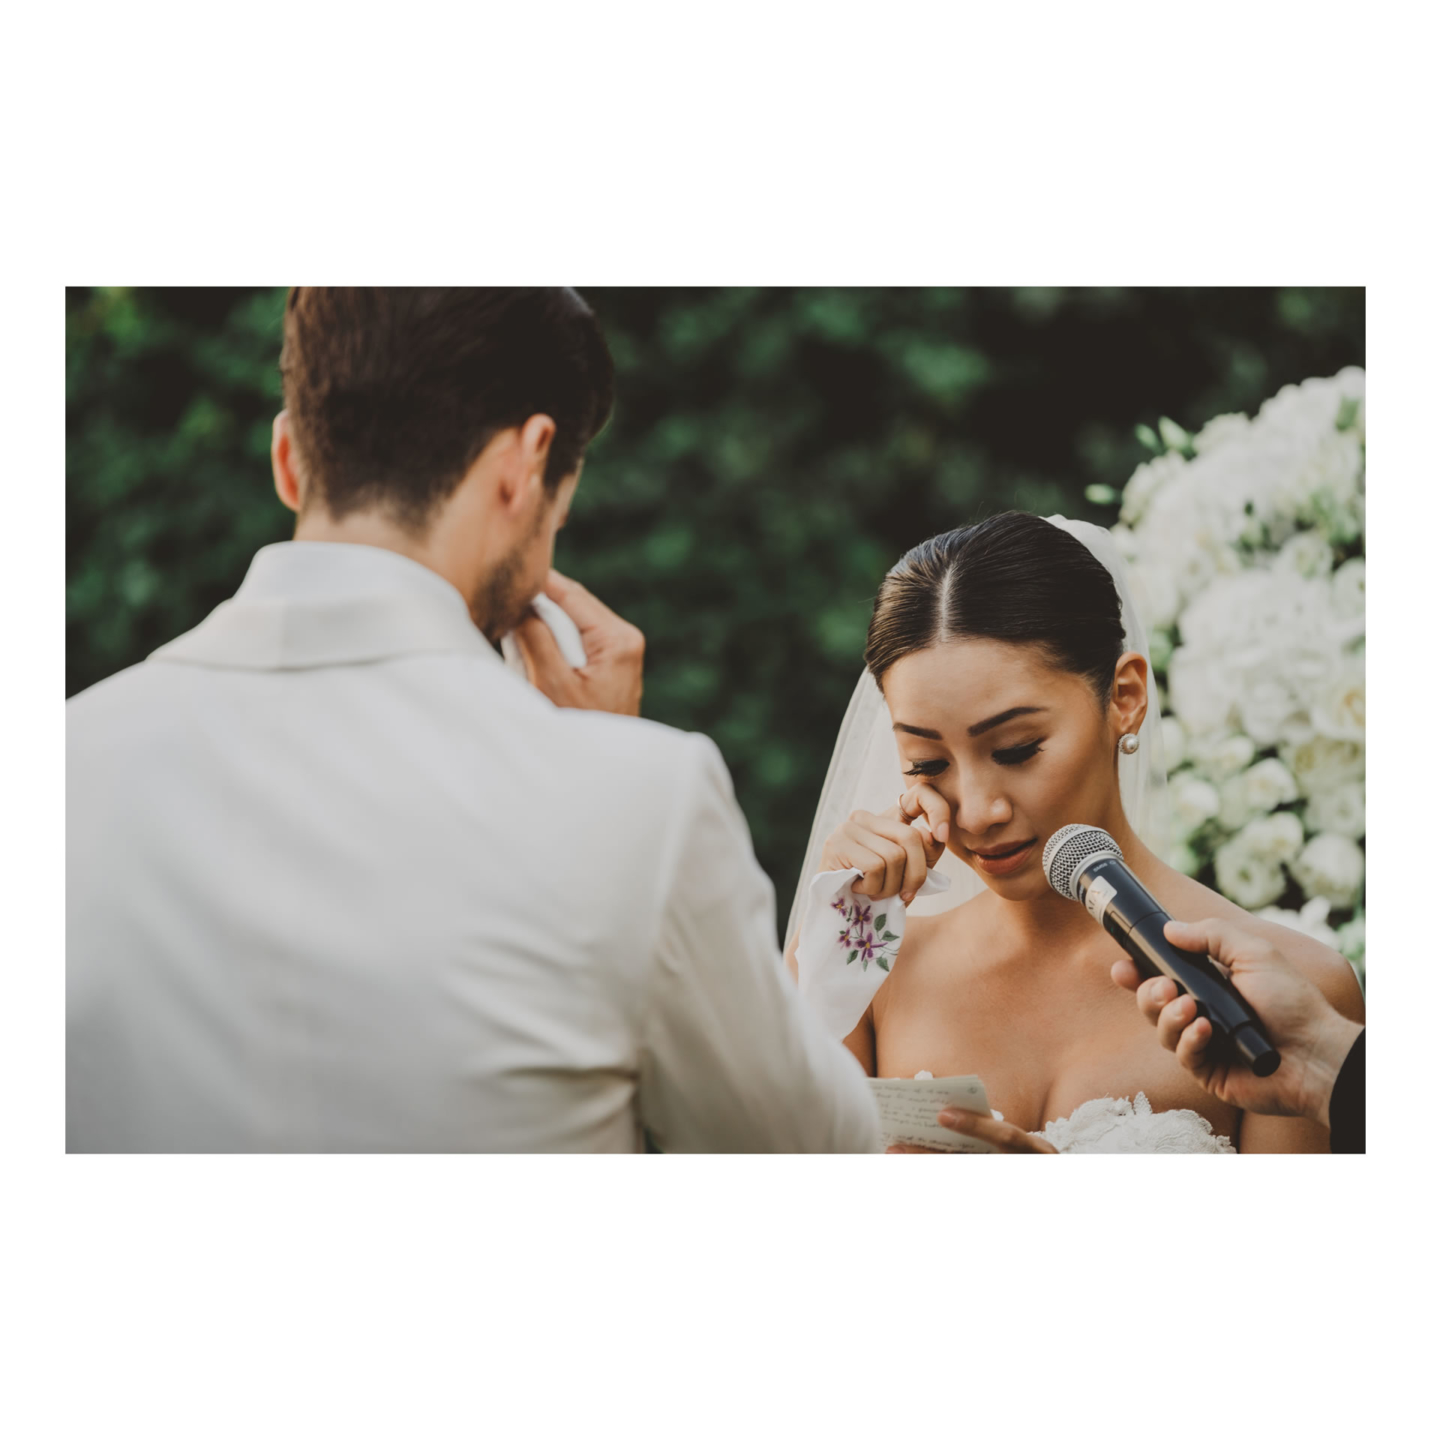 Luxury wedding in Florence (with a chinese tea ceremony) :: Luxury wedding in Florence (with a chinese tea ceremony) :: Luxury wedding photography - 19 :: Luxury wedding in Florence (with a chinese tea ceremony)